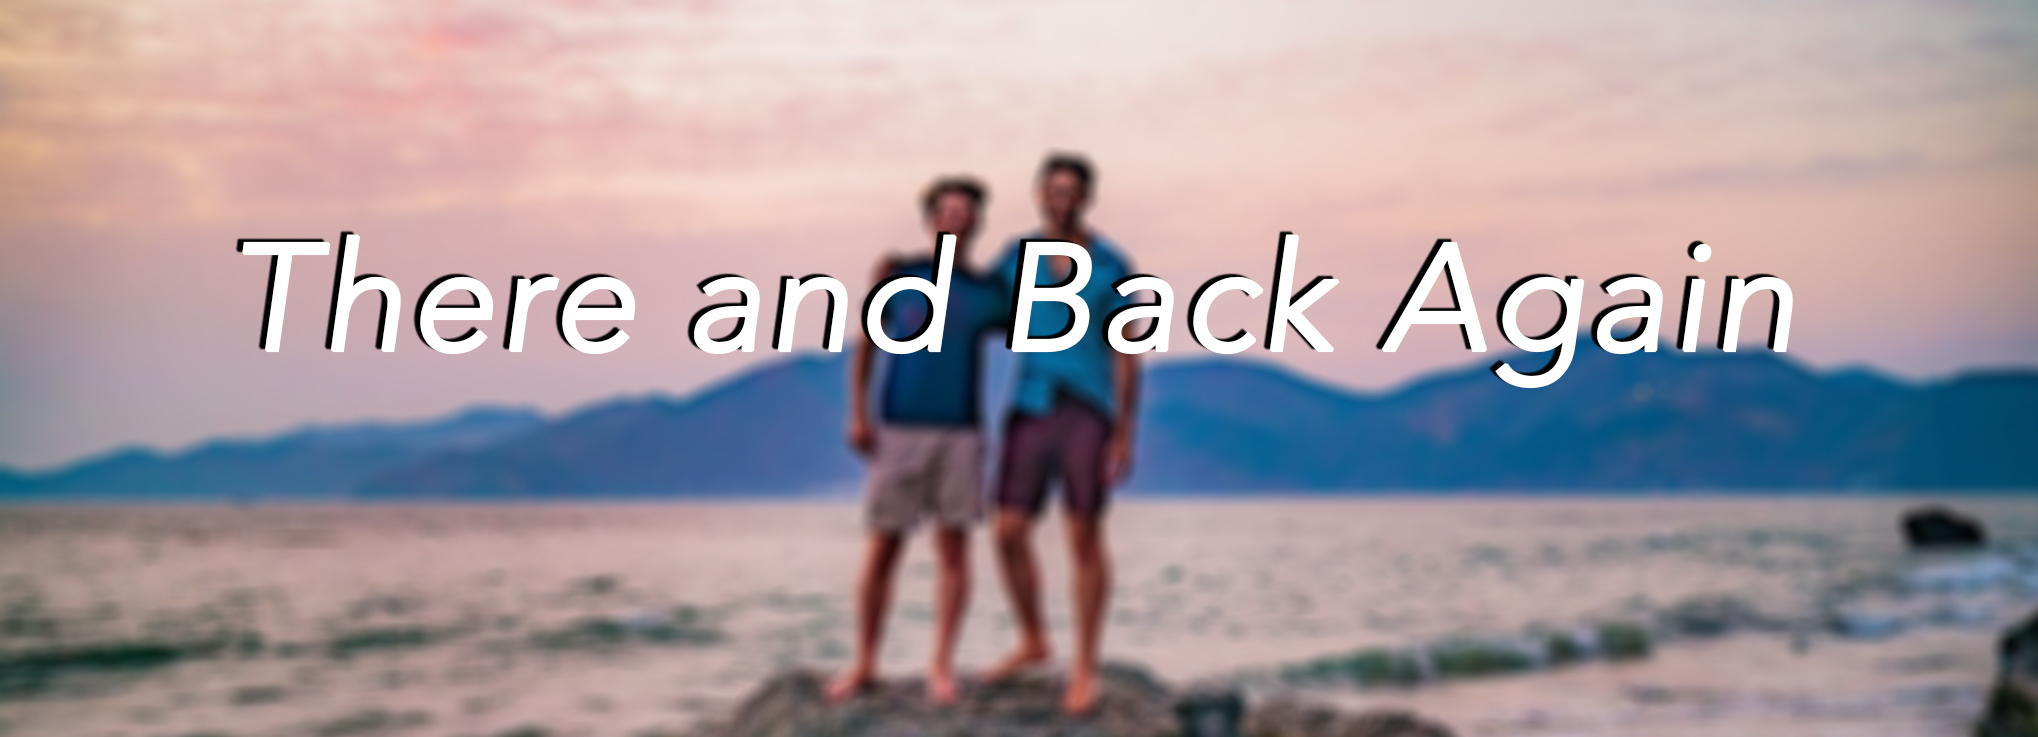 There and Back Again Poster 2.jpeg